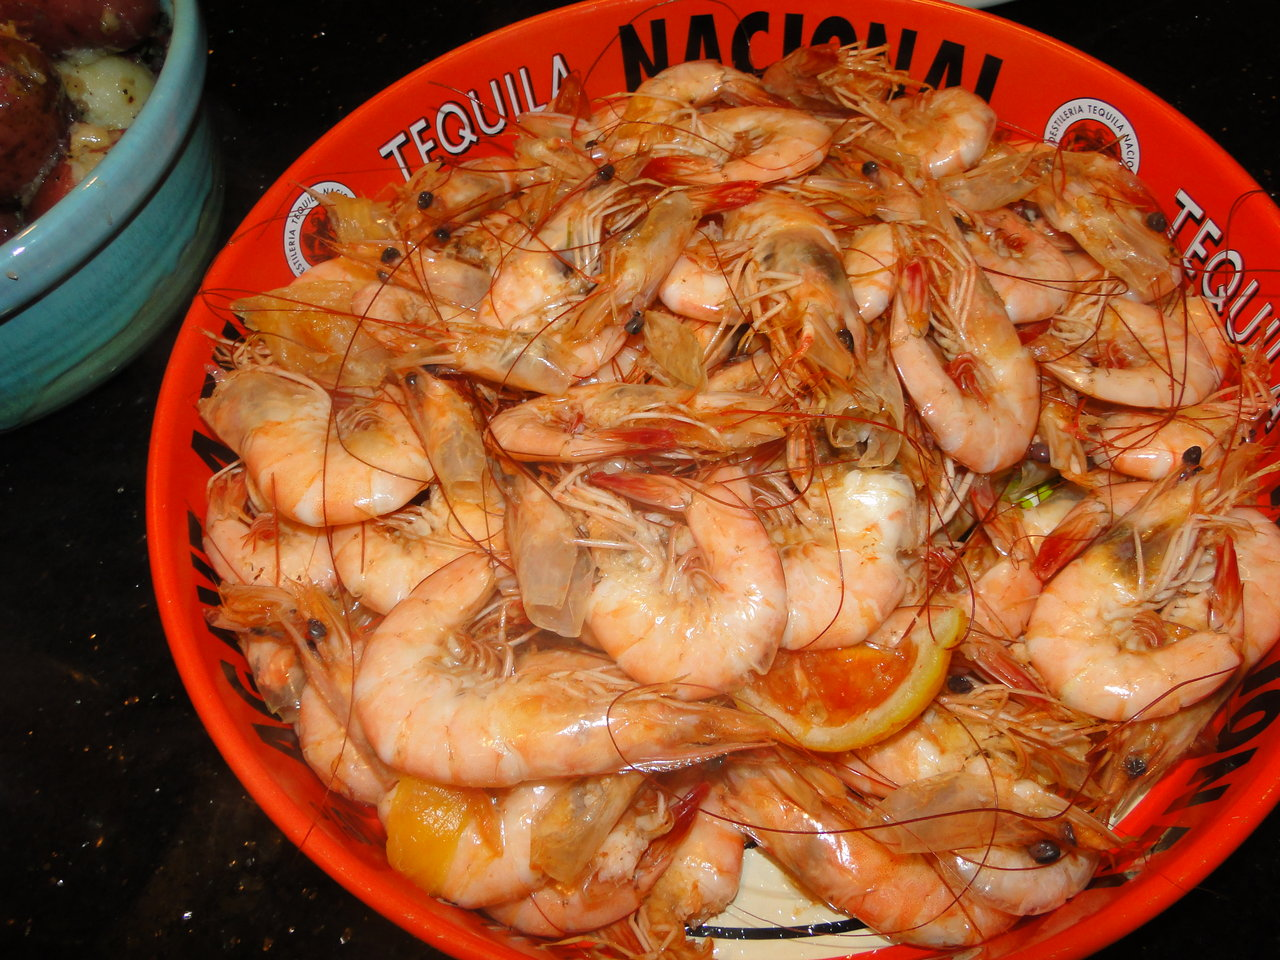 Boiled Shrimp    Thanks to Christopher Dinwiddie, these shrimp came straight from the boats in Pass Christian, MS…and they were the best ever!       2 lbs. large shrimp, shells-on and heads-on if available   1/4 cup shrimp boil seasoning, either Old Bay or Zatarains…plus more for dipping   2 lemons   1 cup cocktail sauce   1 stick butter, melted   Bring a large pot of water to a boil and add 2 Tbs. seasoning and the juice of 1 lemon. Turn the heat down to a bare simmer and add the shrimp. Cook for about 2-3 minutes or until cooked through (I always test one before draining them all) and then drain. Place in a large bowl and toss with remaining seasoning and juice of remaining lemon.   Serve with cocktail sauce, extra seasoning spice, melted butter and cold beer